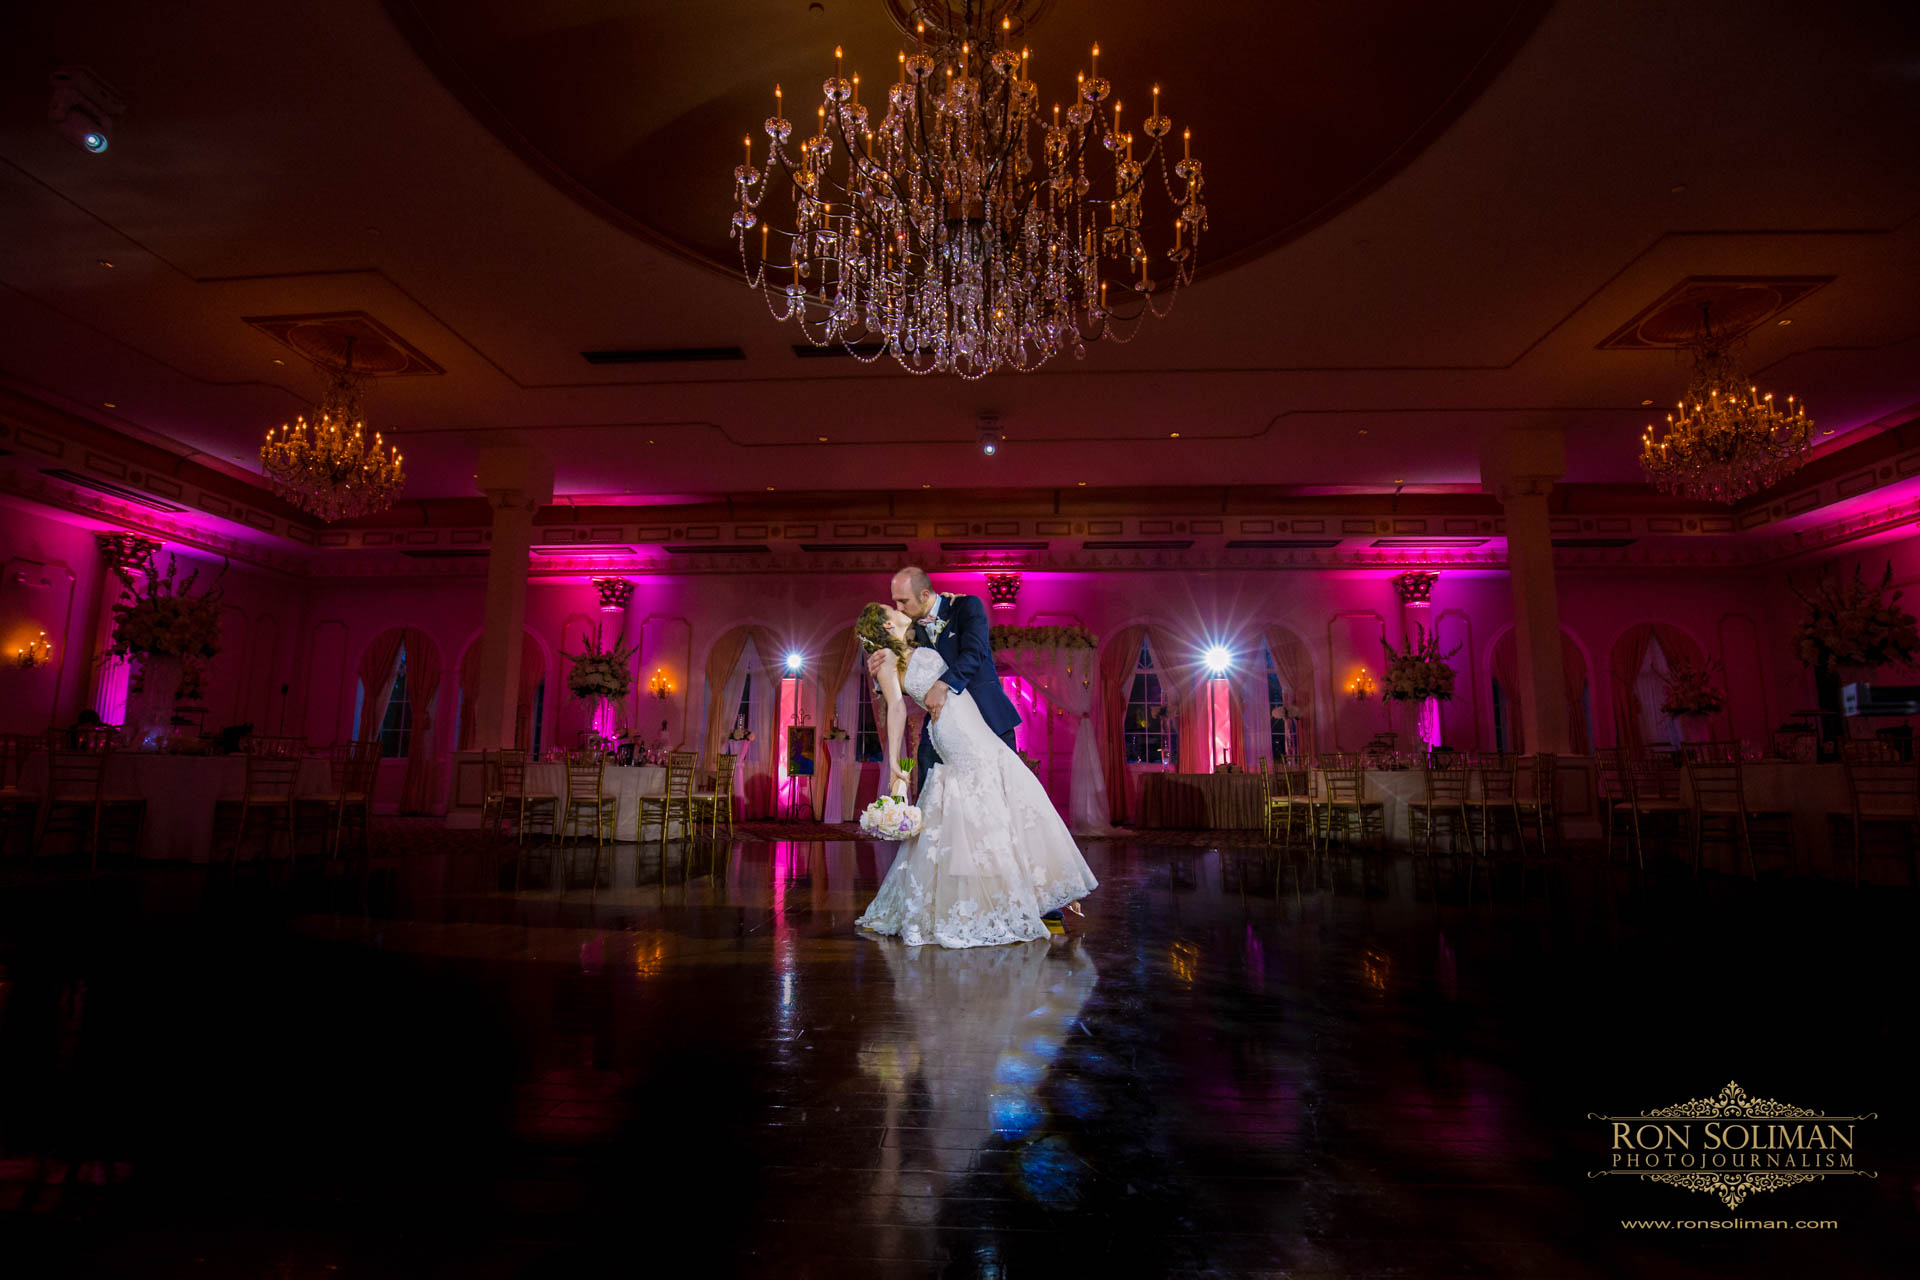 THE MERION WEDDING LM 26